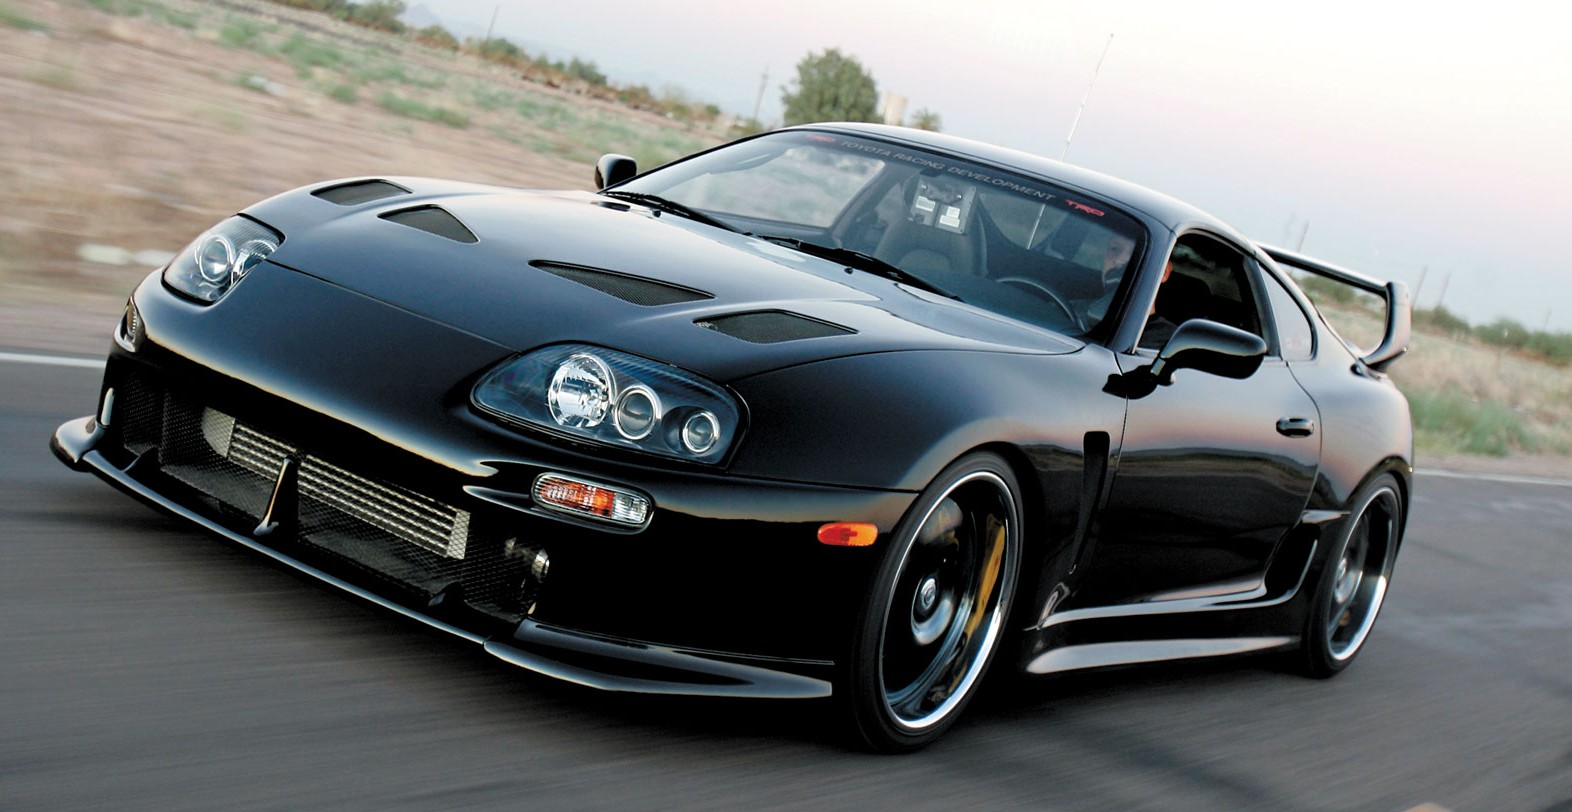 Toyota Supra Name Likely For Resurrection Photos 1 Of 3